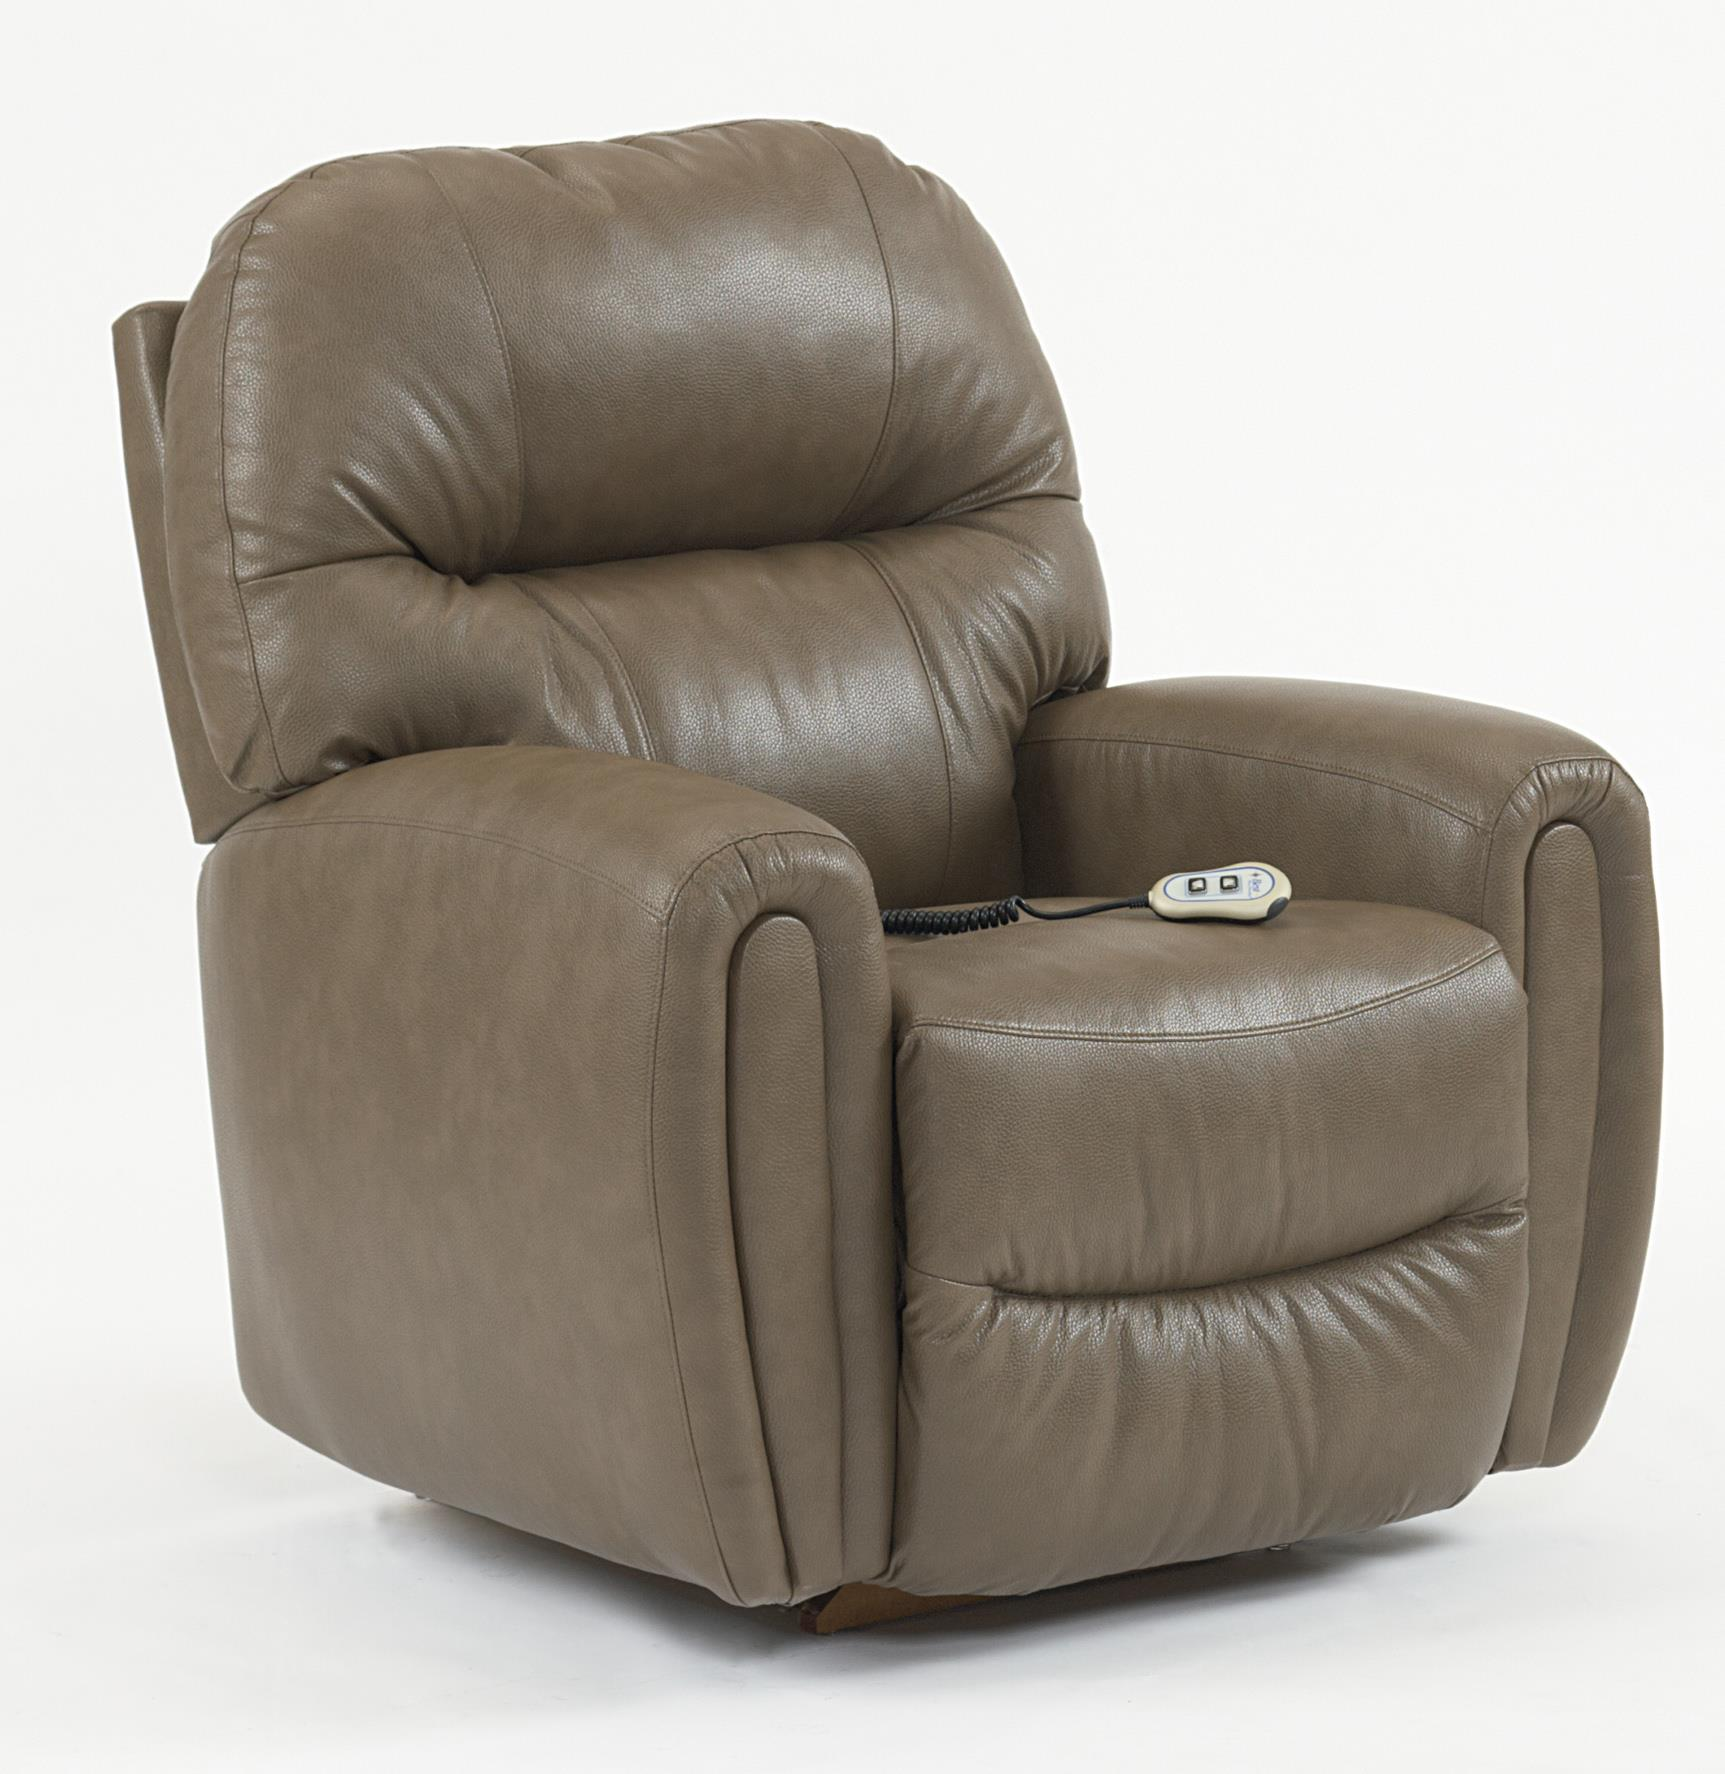 Best Home Furnishings Recliners Medium Markson Power